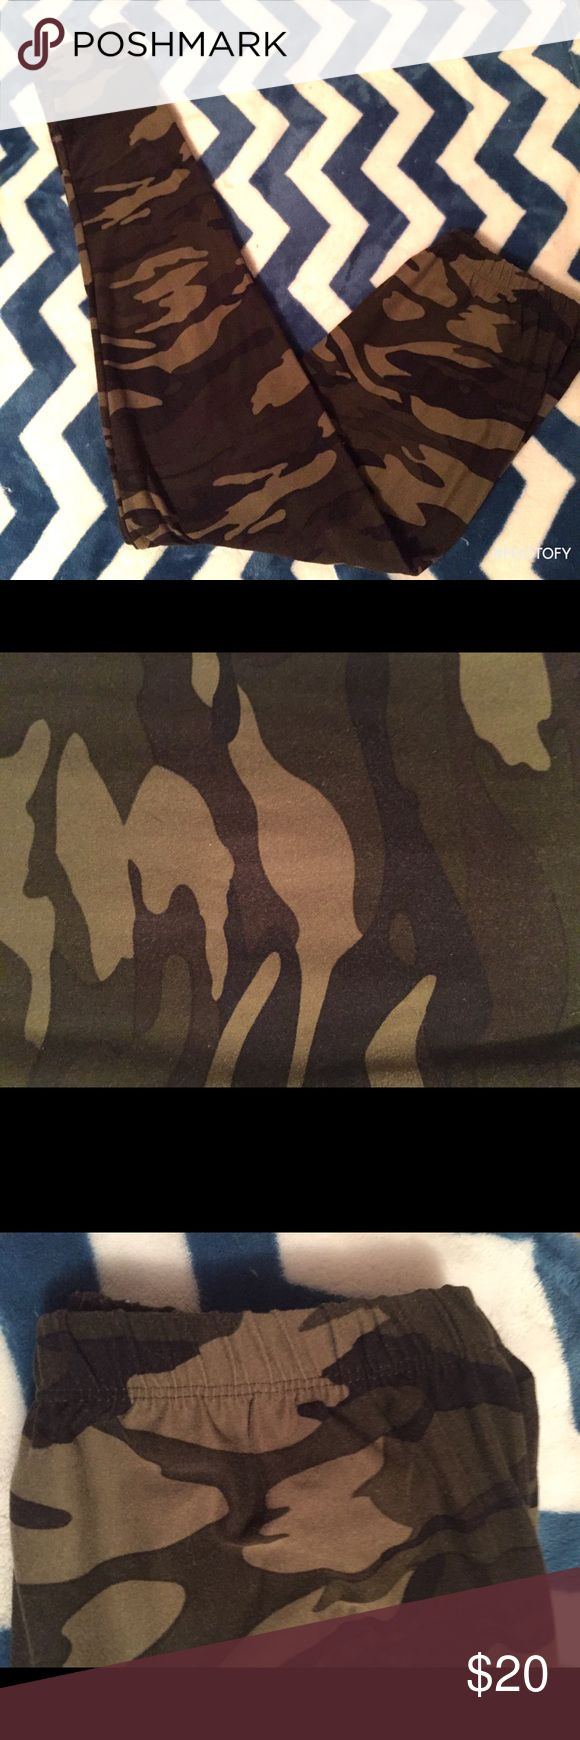 Lularoe CAMO leggings OS Older style Lularoe leggings in camo print with elastic waist band (see picture). On the larger size of OS which is why I'm selling, too big for me 😩 like new condition. LuLaRoe Pants Leggings